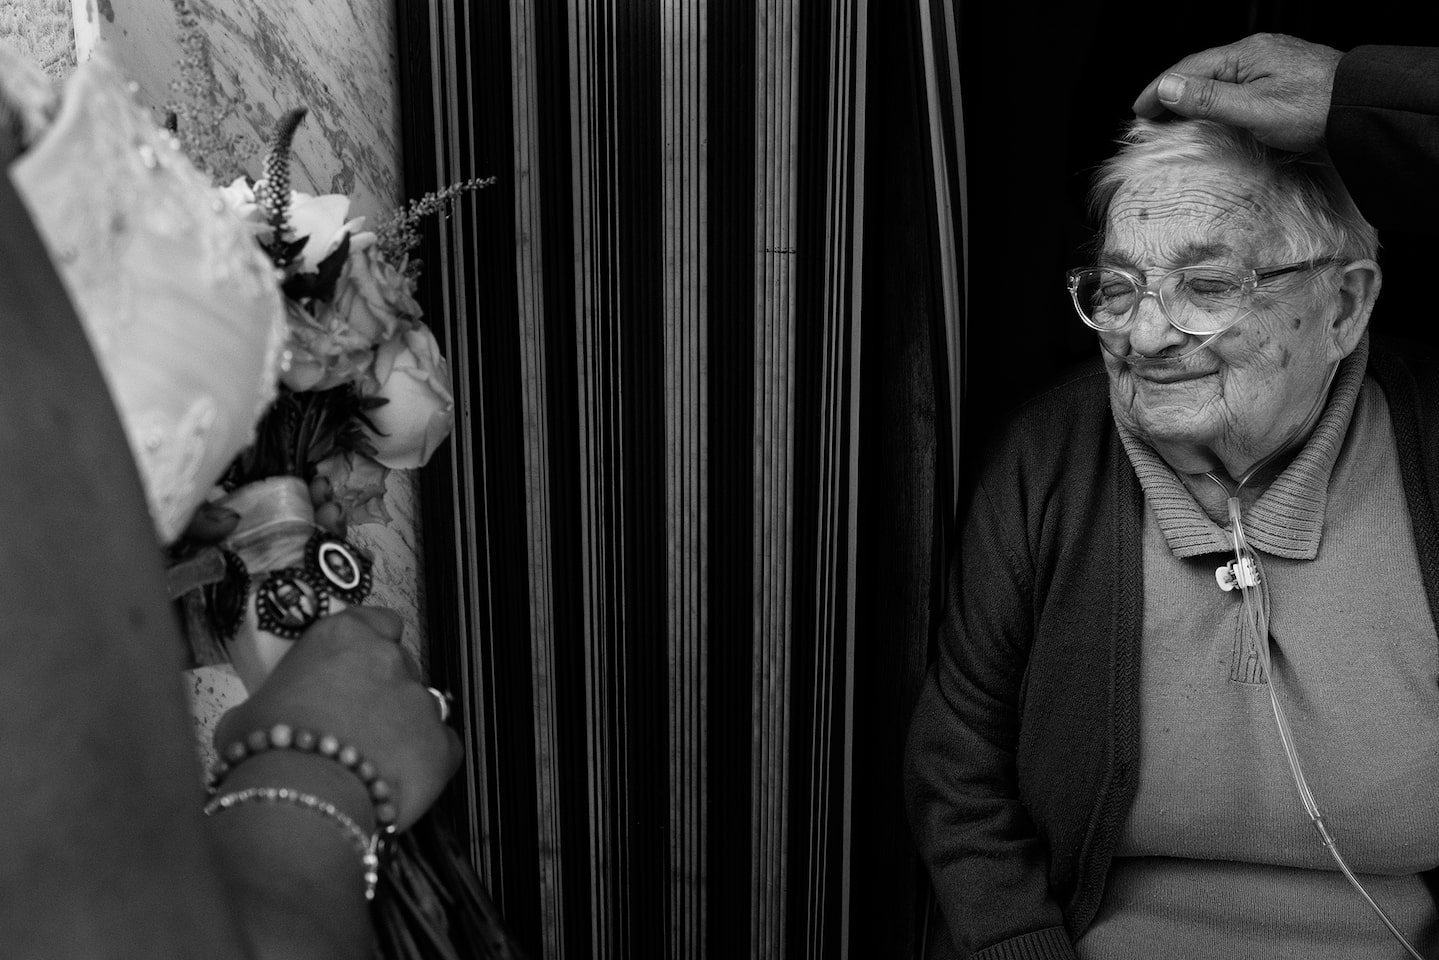 jorge miguel sony alpha 7RII brides grandmother looking on